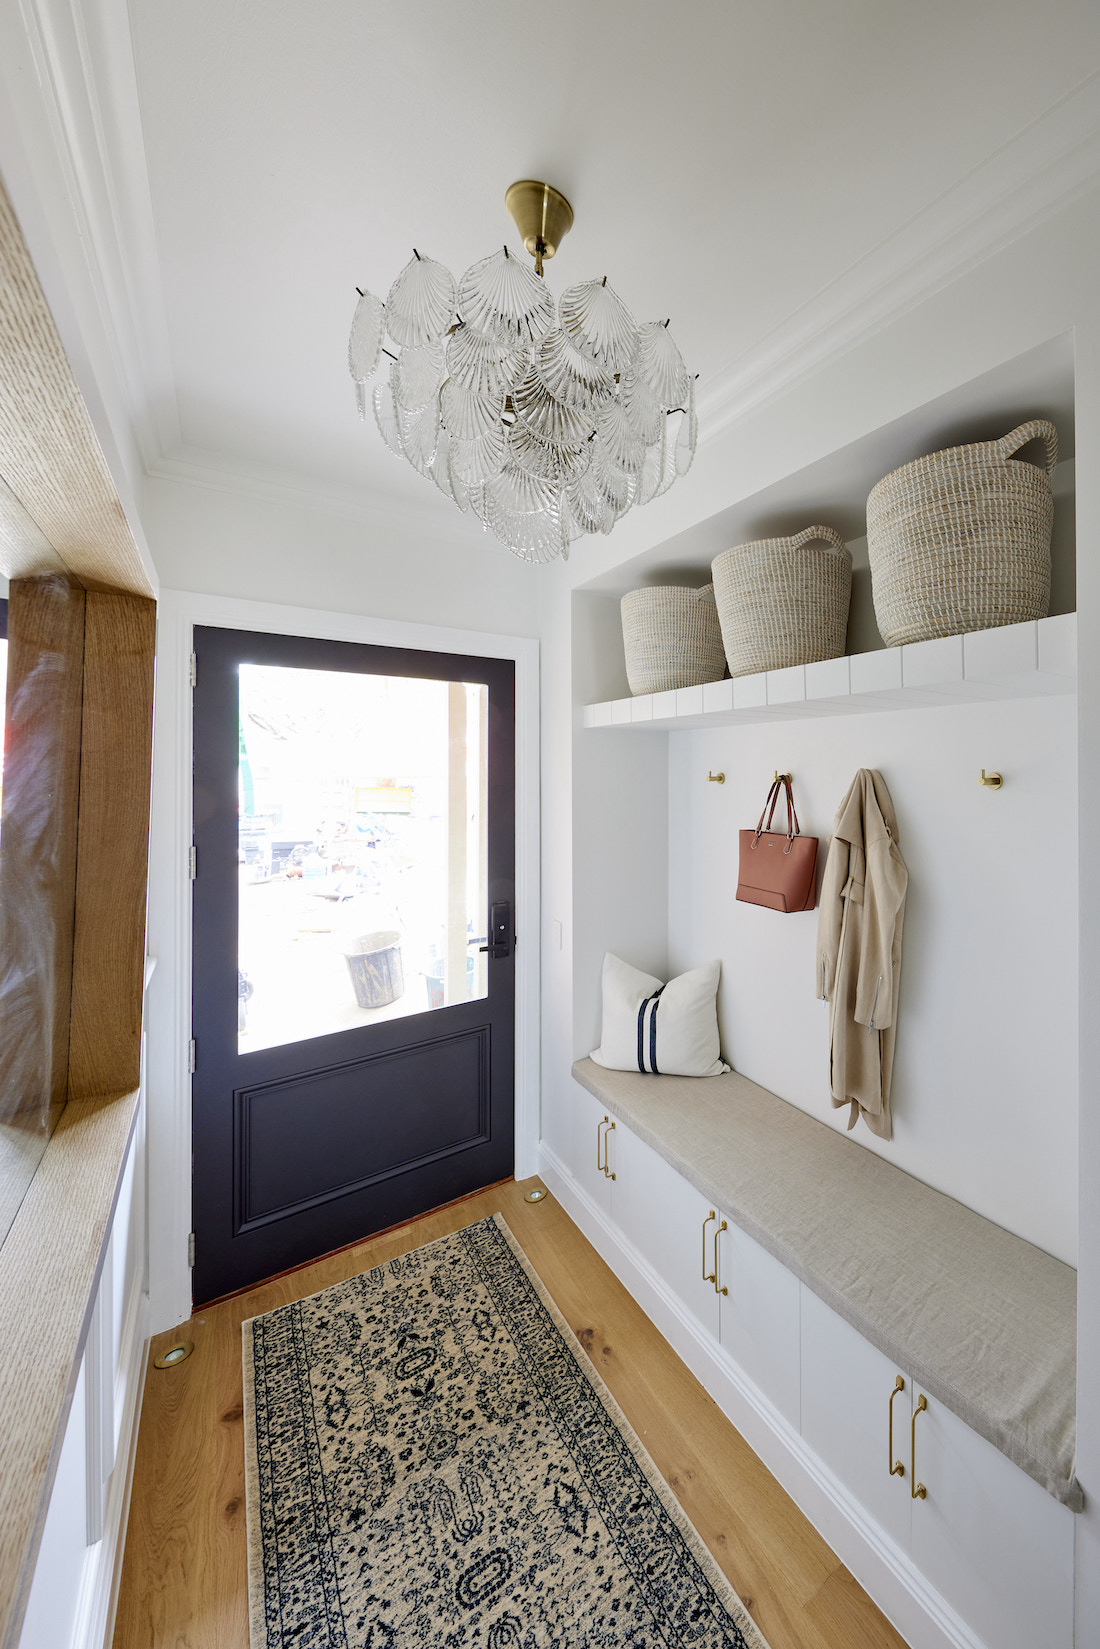 Built-in bench seat entry